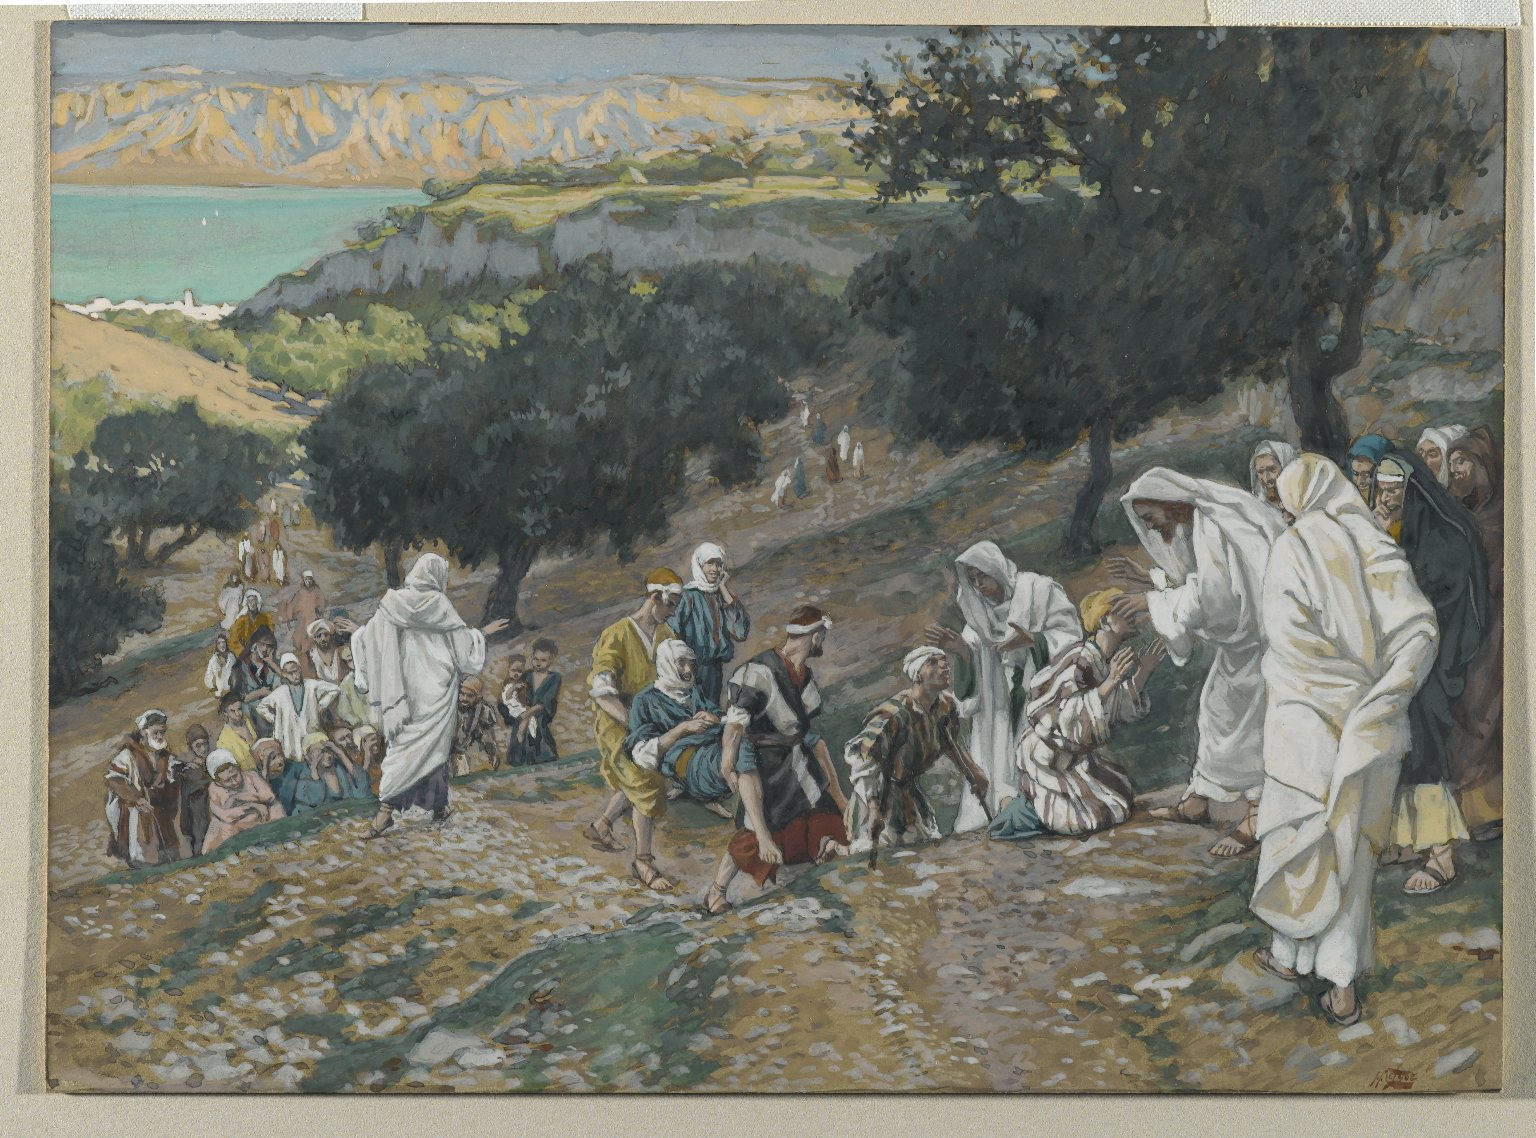 Brooklyn Museum: Jesus Heals the Blind and Lame on the Mountain (Sur la montagne Jésus guérit les aveugles et les boiteux)